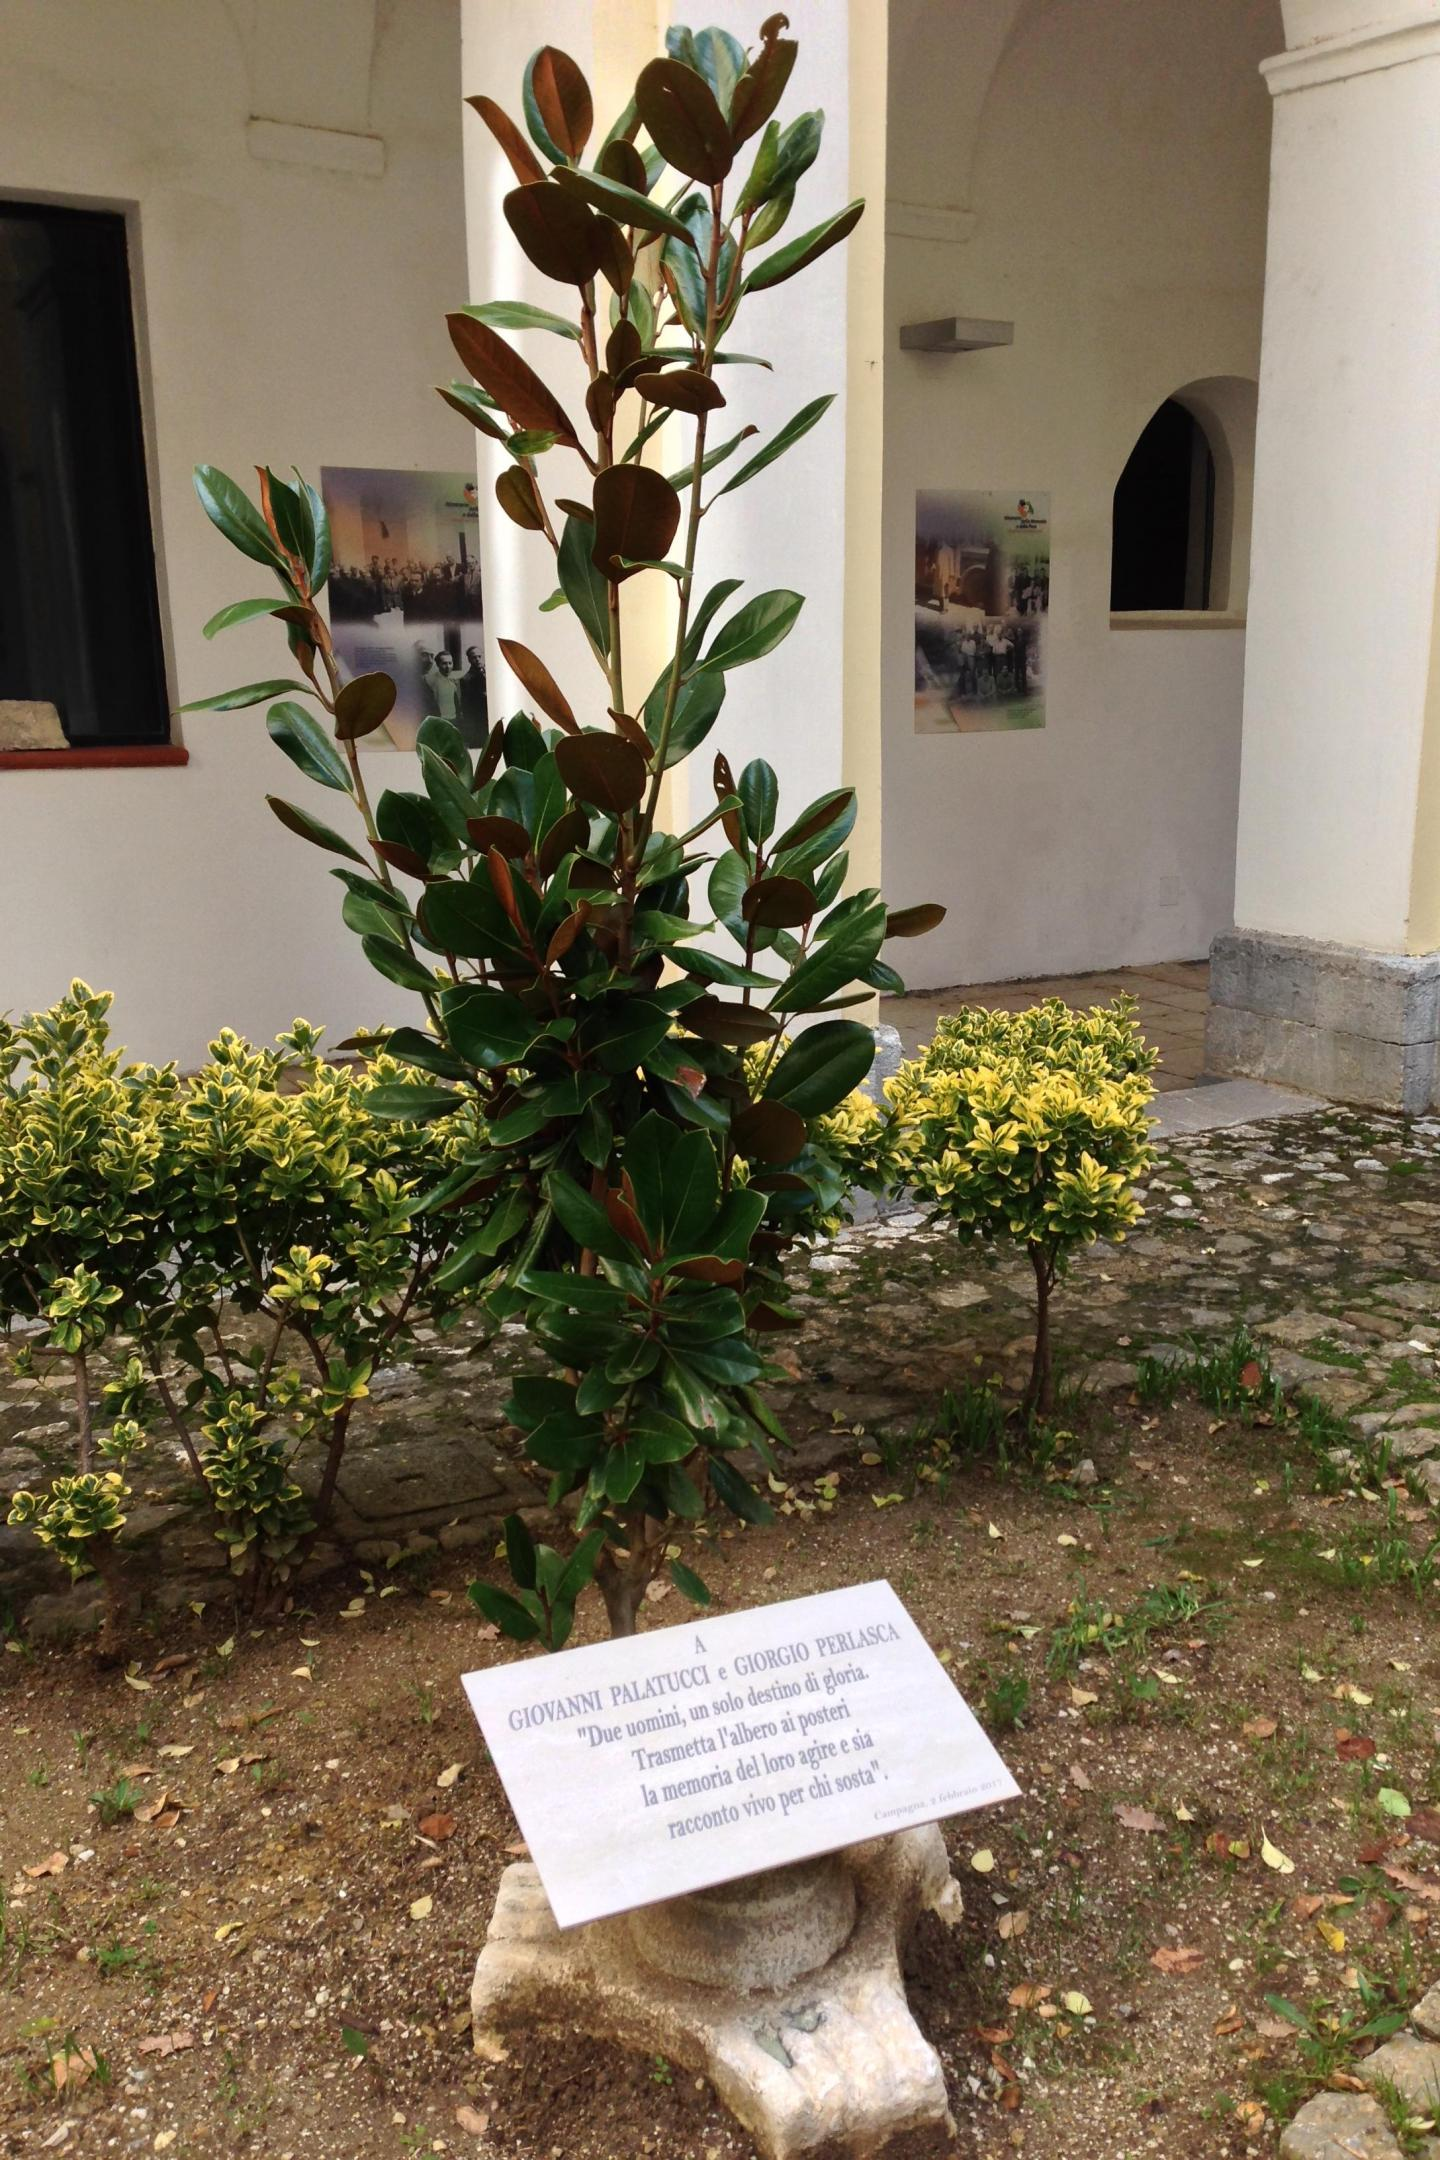 The magnolia tree dedicated to Giorgio Perlasca and Giovanni Palatucci.